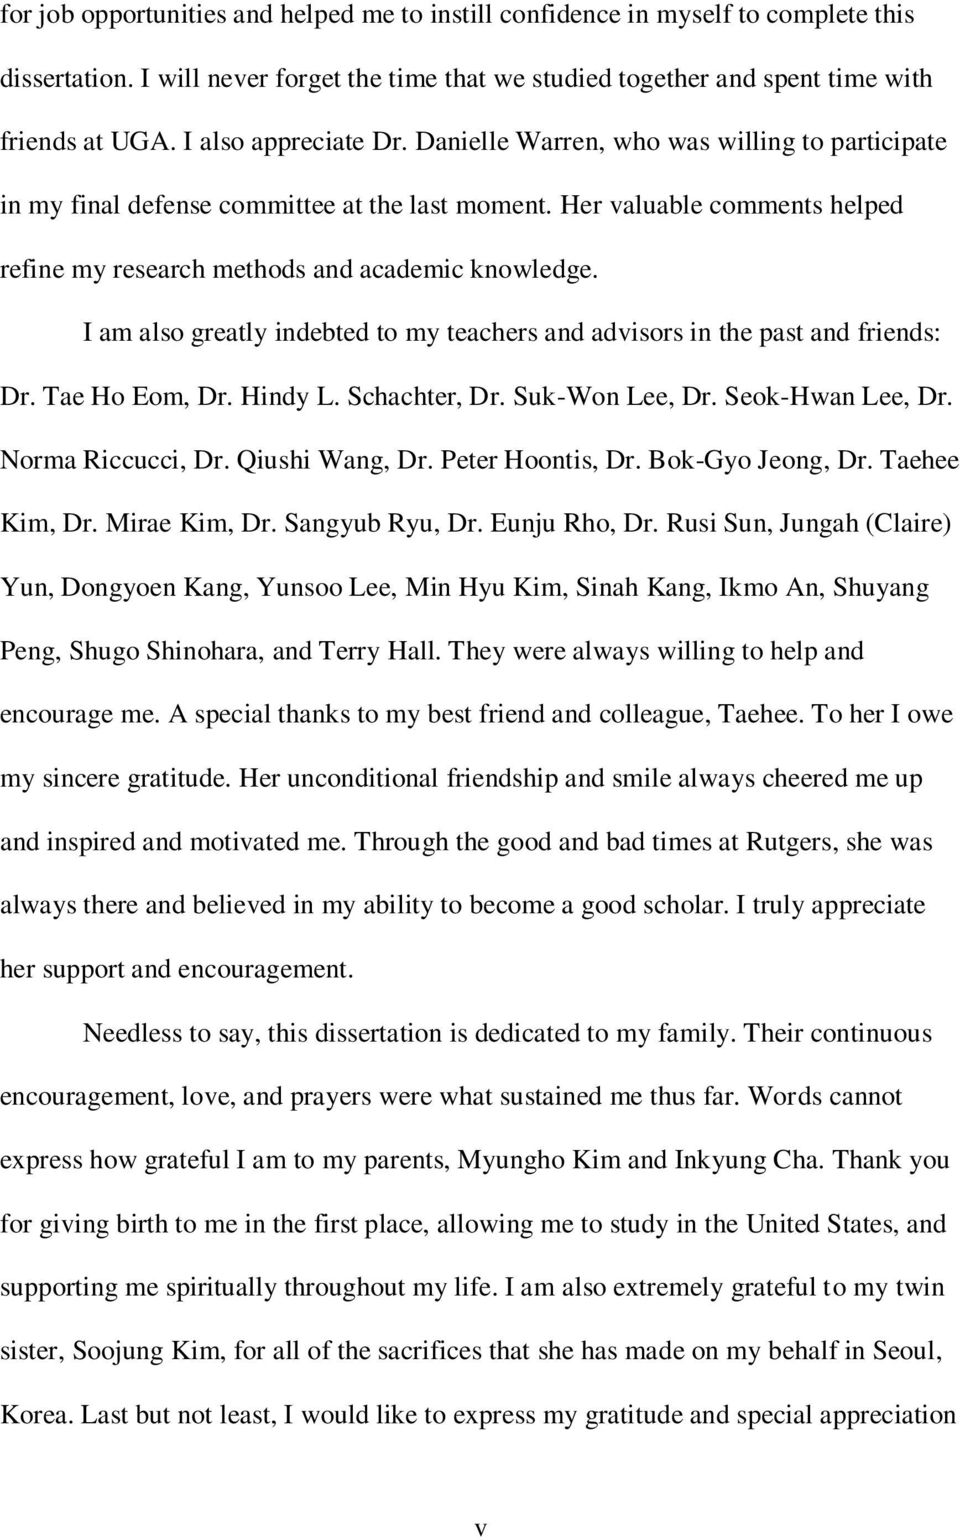 I am also greatly indebted to my teachers and advisors in the past and friends: Dr. Tae Ho Eom, Dr. Hindy L. Schachter, Dr. Suk-Won Lee, Dr. Seok-Hwan Lee, Dr. Norma Riccucci, Dr. Qiushi Wang, Dr.